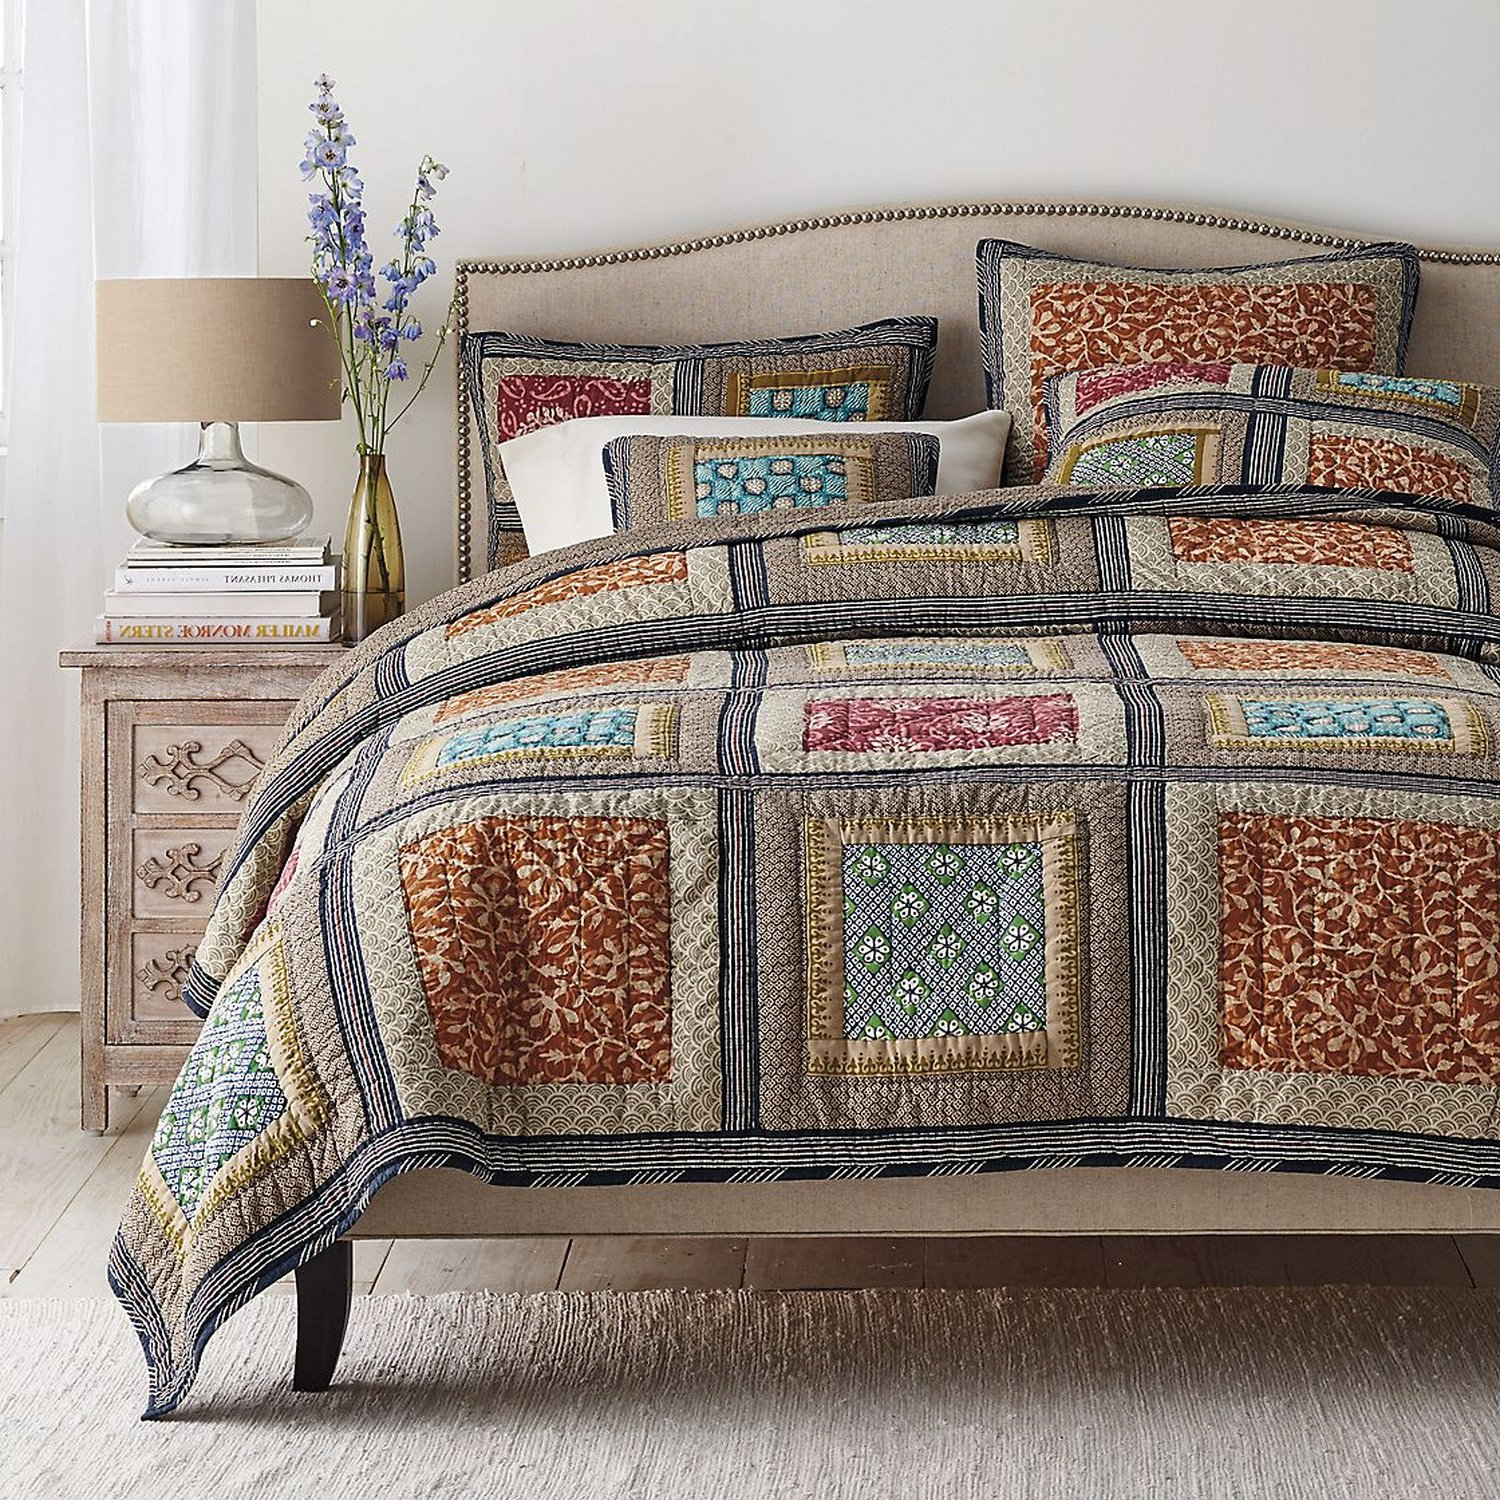 Dada Bedding Collection Reversible Bohemian Real Patchwork Gallery of Roses Cotton Quilt Bedspread Set, Multi-Colored, King, 3-Pieces by DaDa Bedding Collection